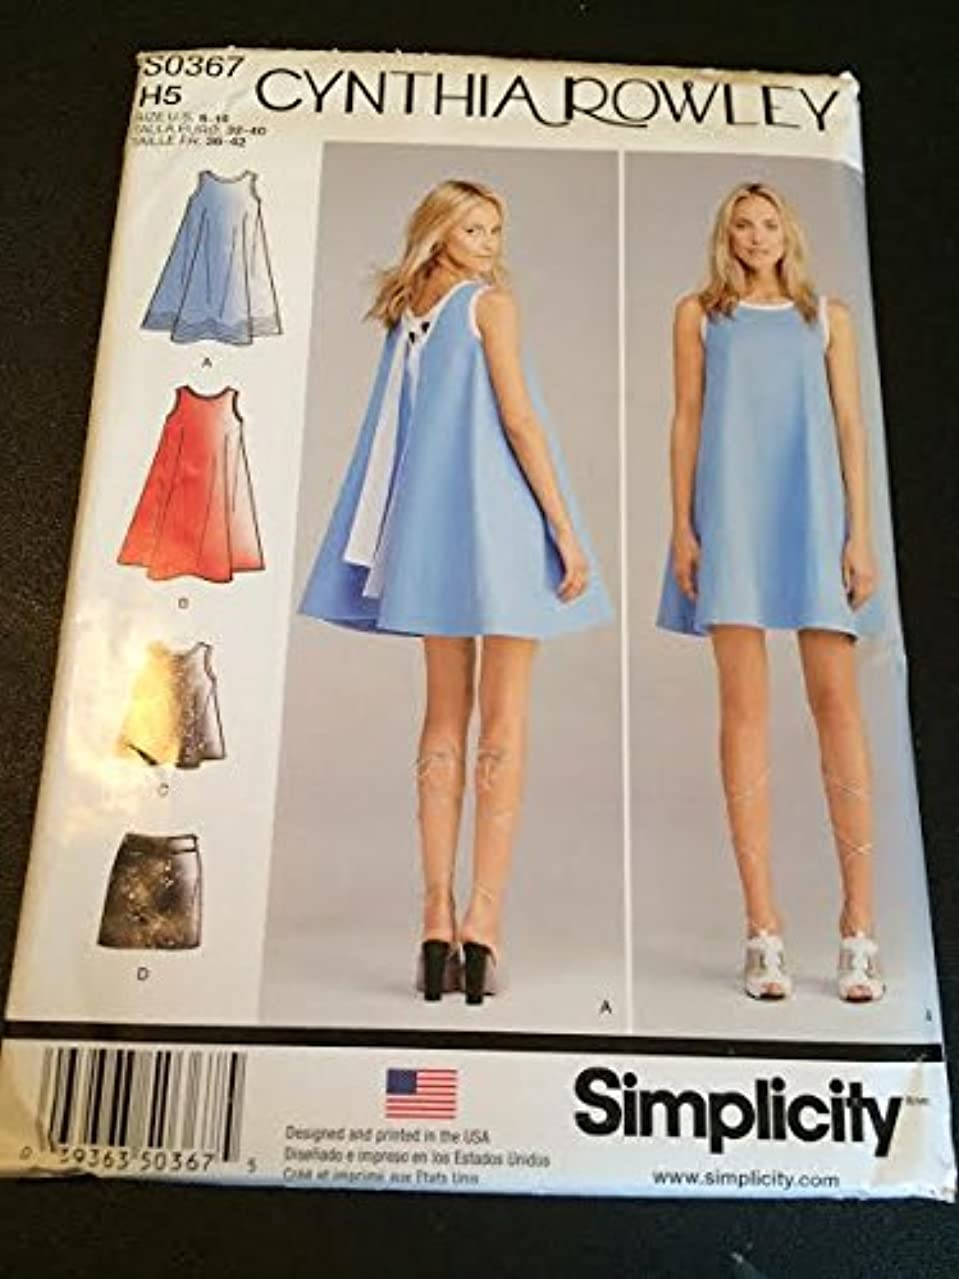 Simplicity S0367 Sewing Pattern, Misses' Dress or Top and Skirt, Size H5 (6-14)